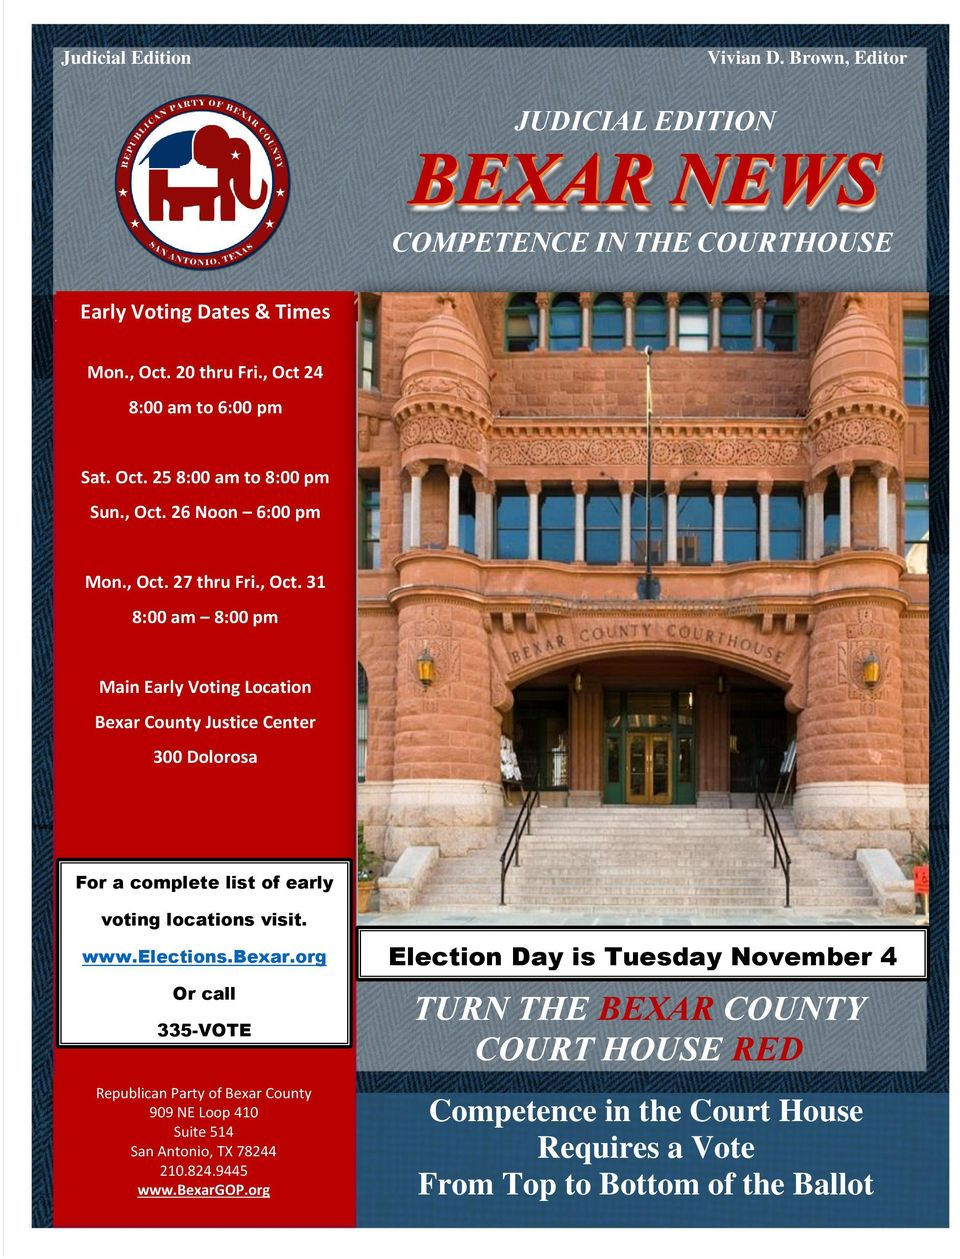 TURN THE BEXAR COUNTY COURT HOUSE RED  Competence in the